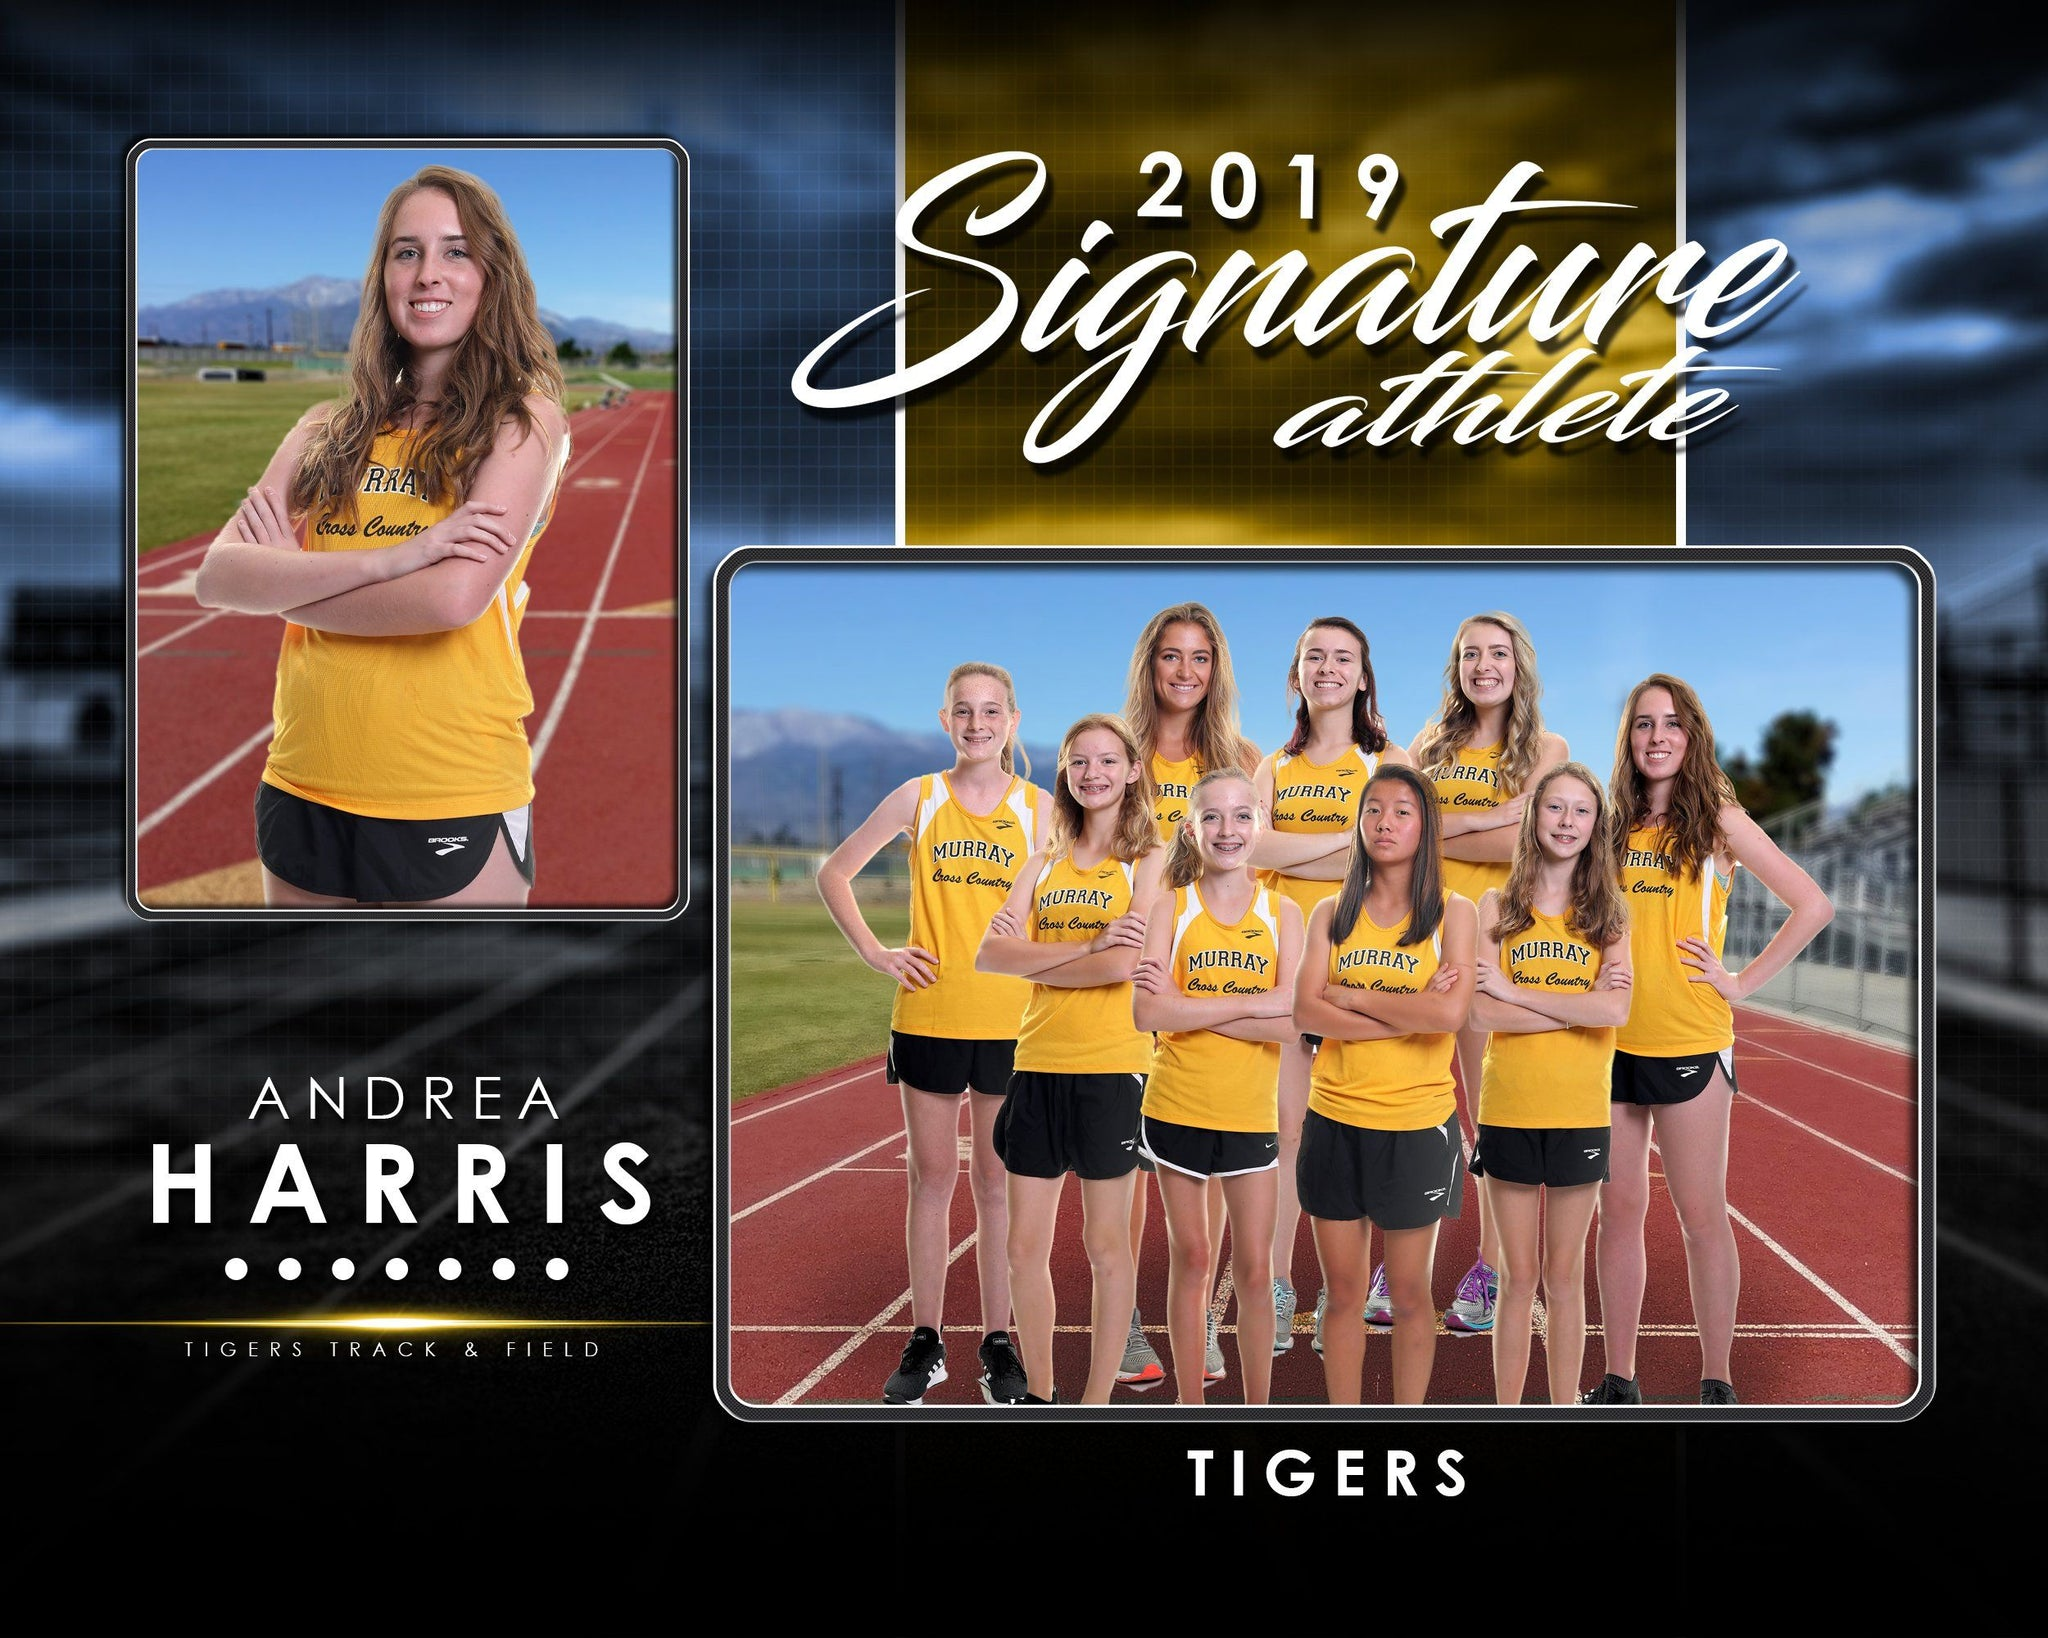 Signature Player - Track & Field - V1 - Drop In Memory Mate H Template-Photoshop Template - Photo Solutions